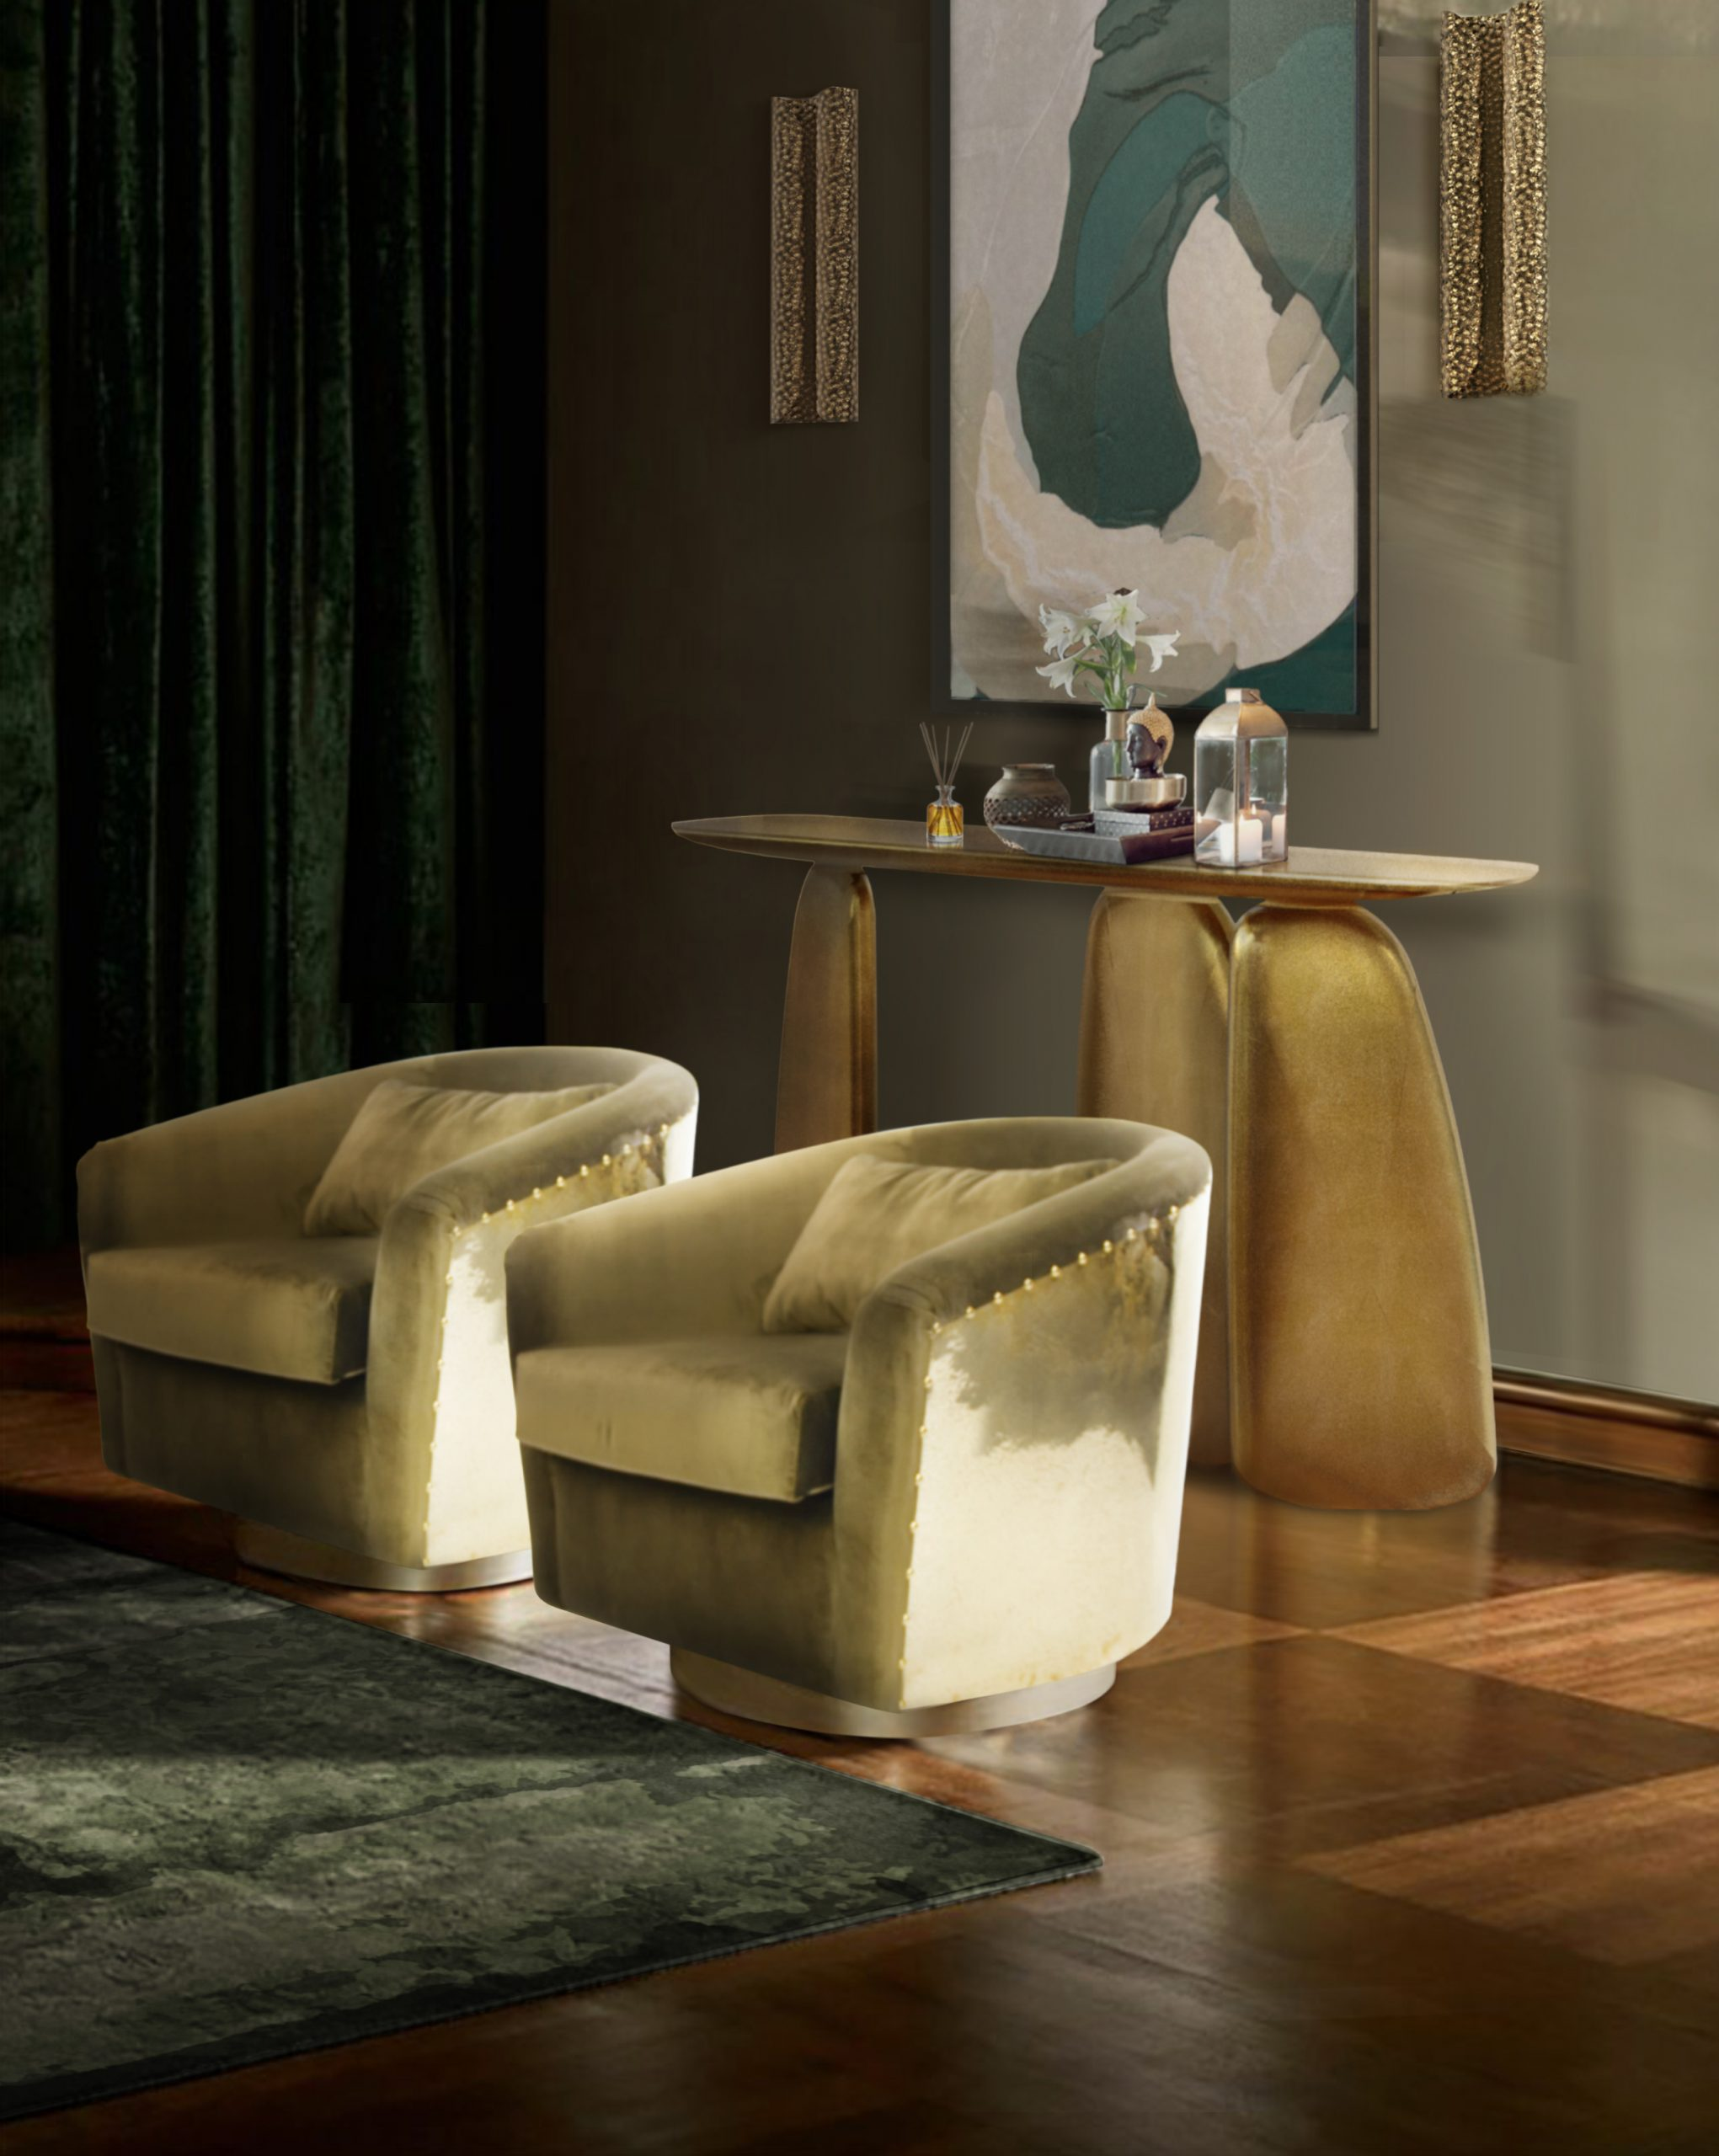 20 Modern Armchairs For A Bold And Timeless Design modern armchairs 20 Modern Armchairs For A Bold And Timeless Design 20 Modern Armchairs For A Bold And Timeless Design3 scaled